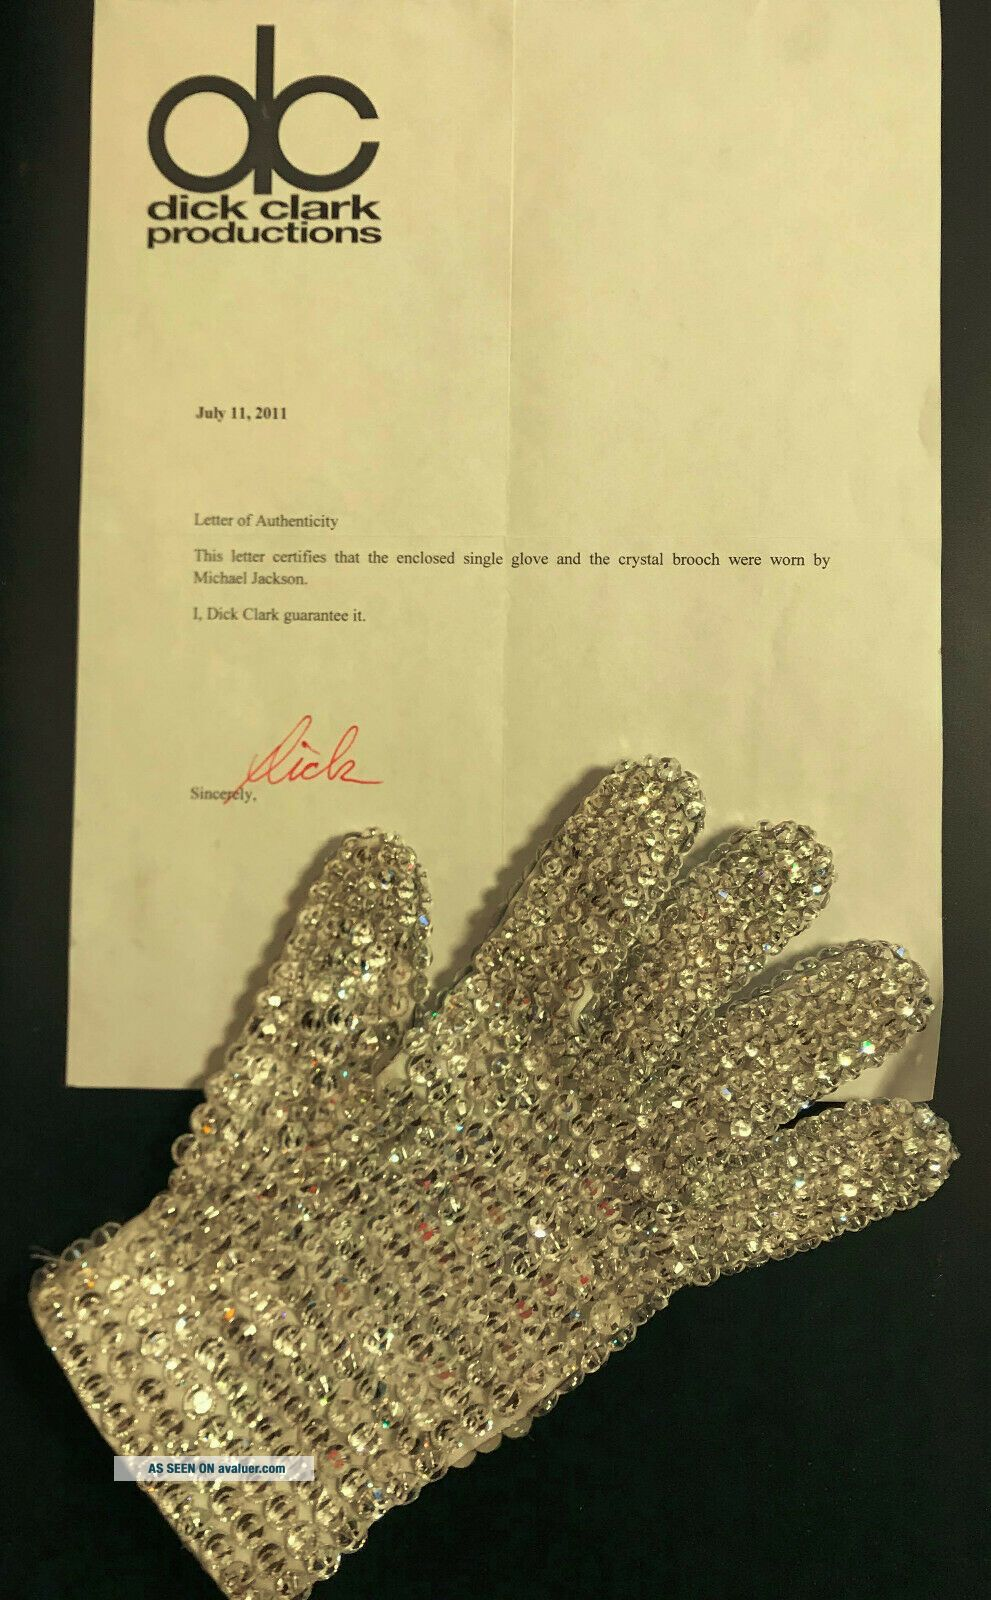 Michael Jackson Worn Crystal Glove